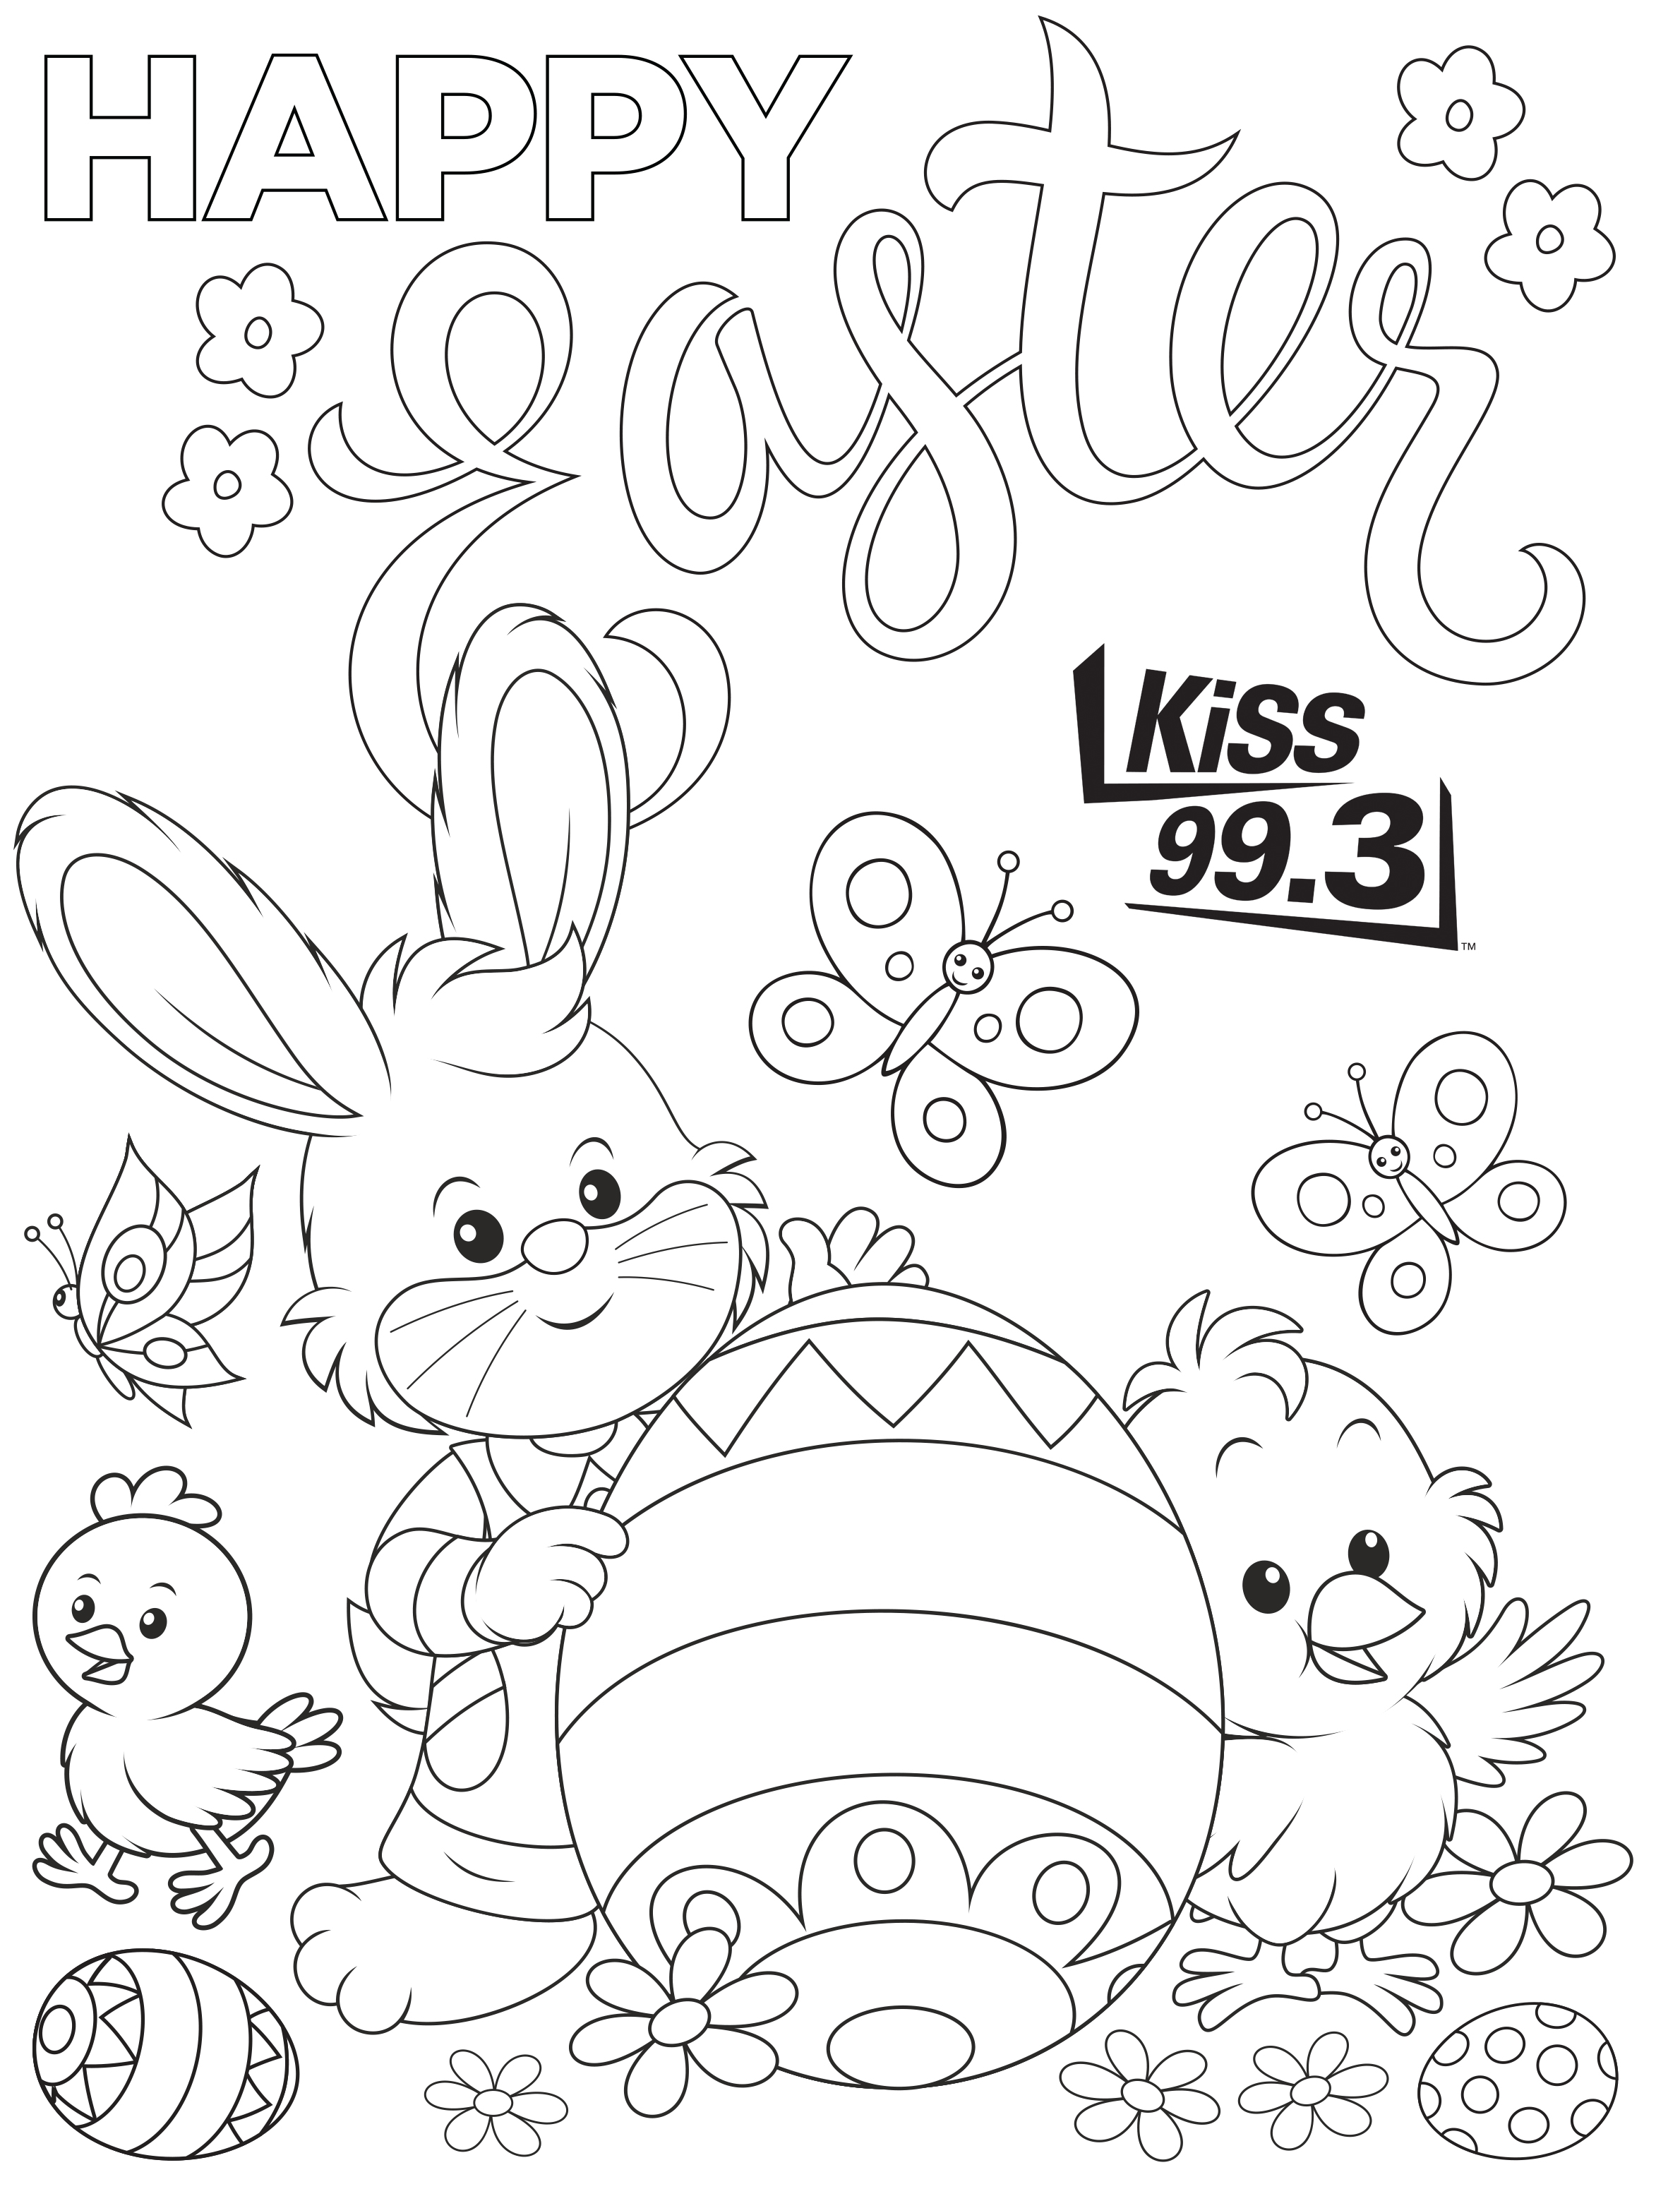 Print and colour our easter colouring page